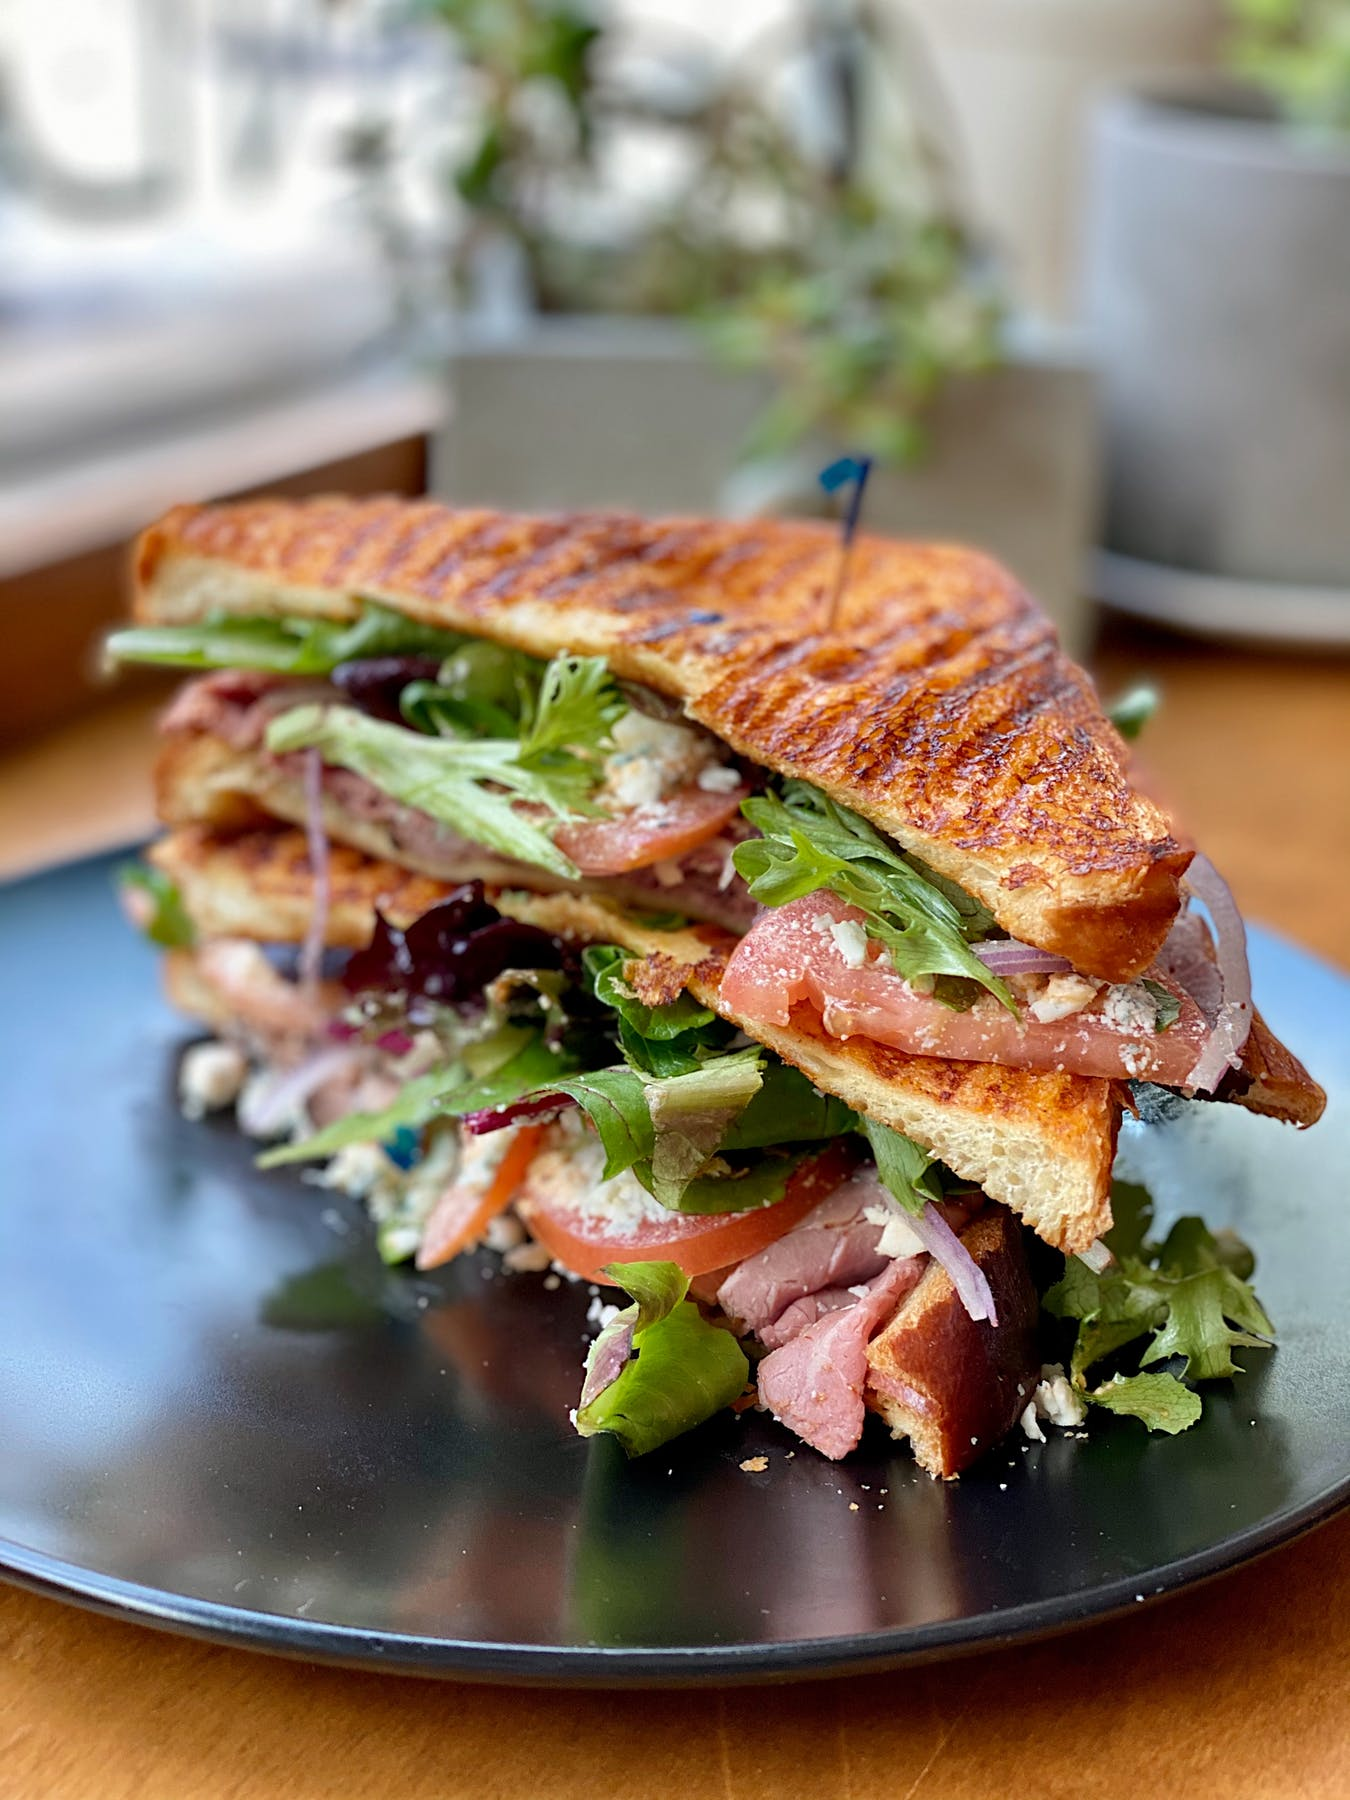 a close up of a sandwich and salad on a plate